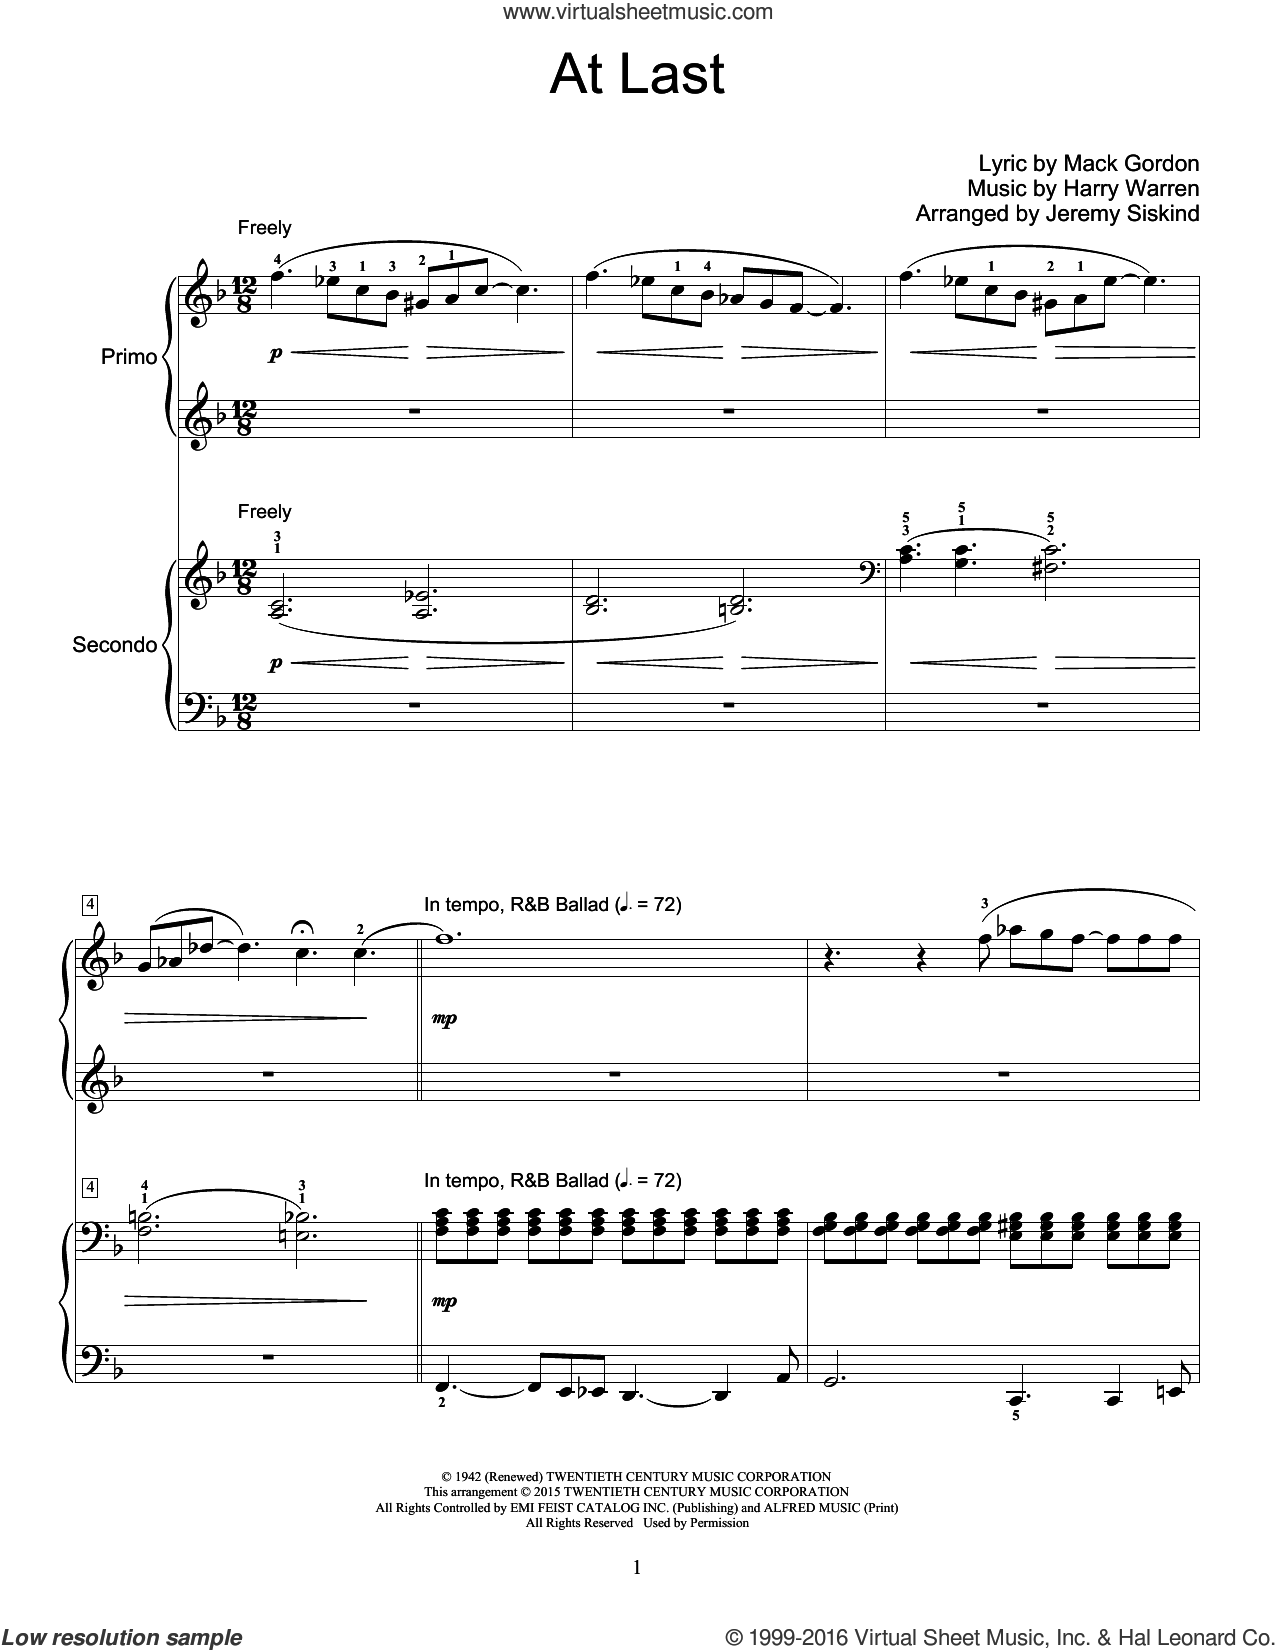 At Last sheet music for piano four hands by Harry Warren, Jeremy Siskind, Celine Dion, Etta James and Mack Gordon, intermediate skill level